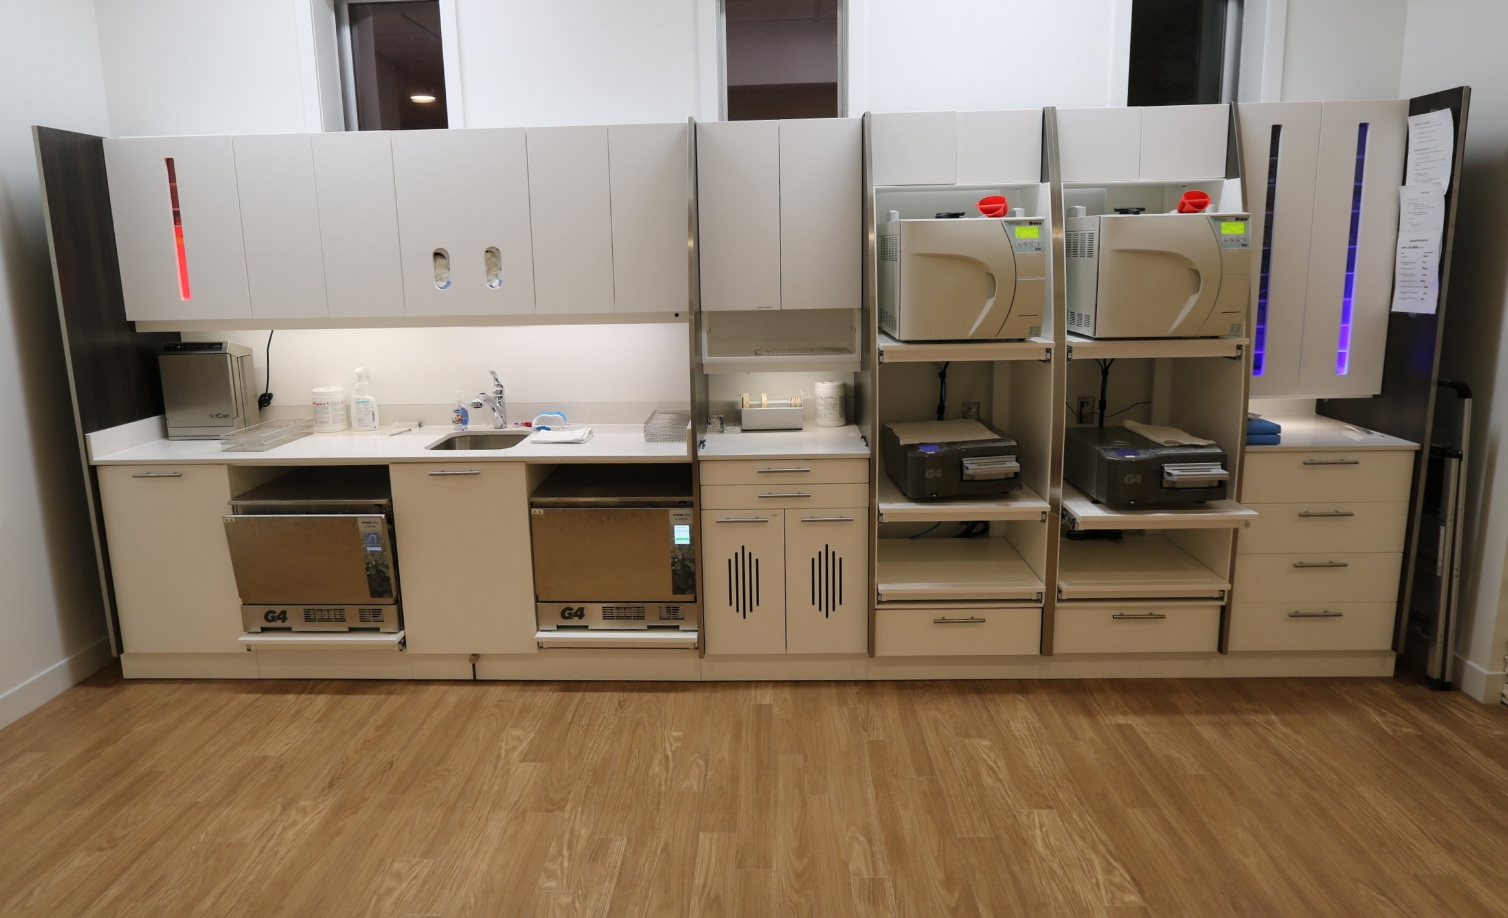 Sterilization - We take infection control seriously! We have a brand new modern Scican stericenter that allows us to go above and beyond the current sterilization standards!